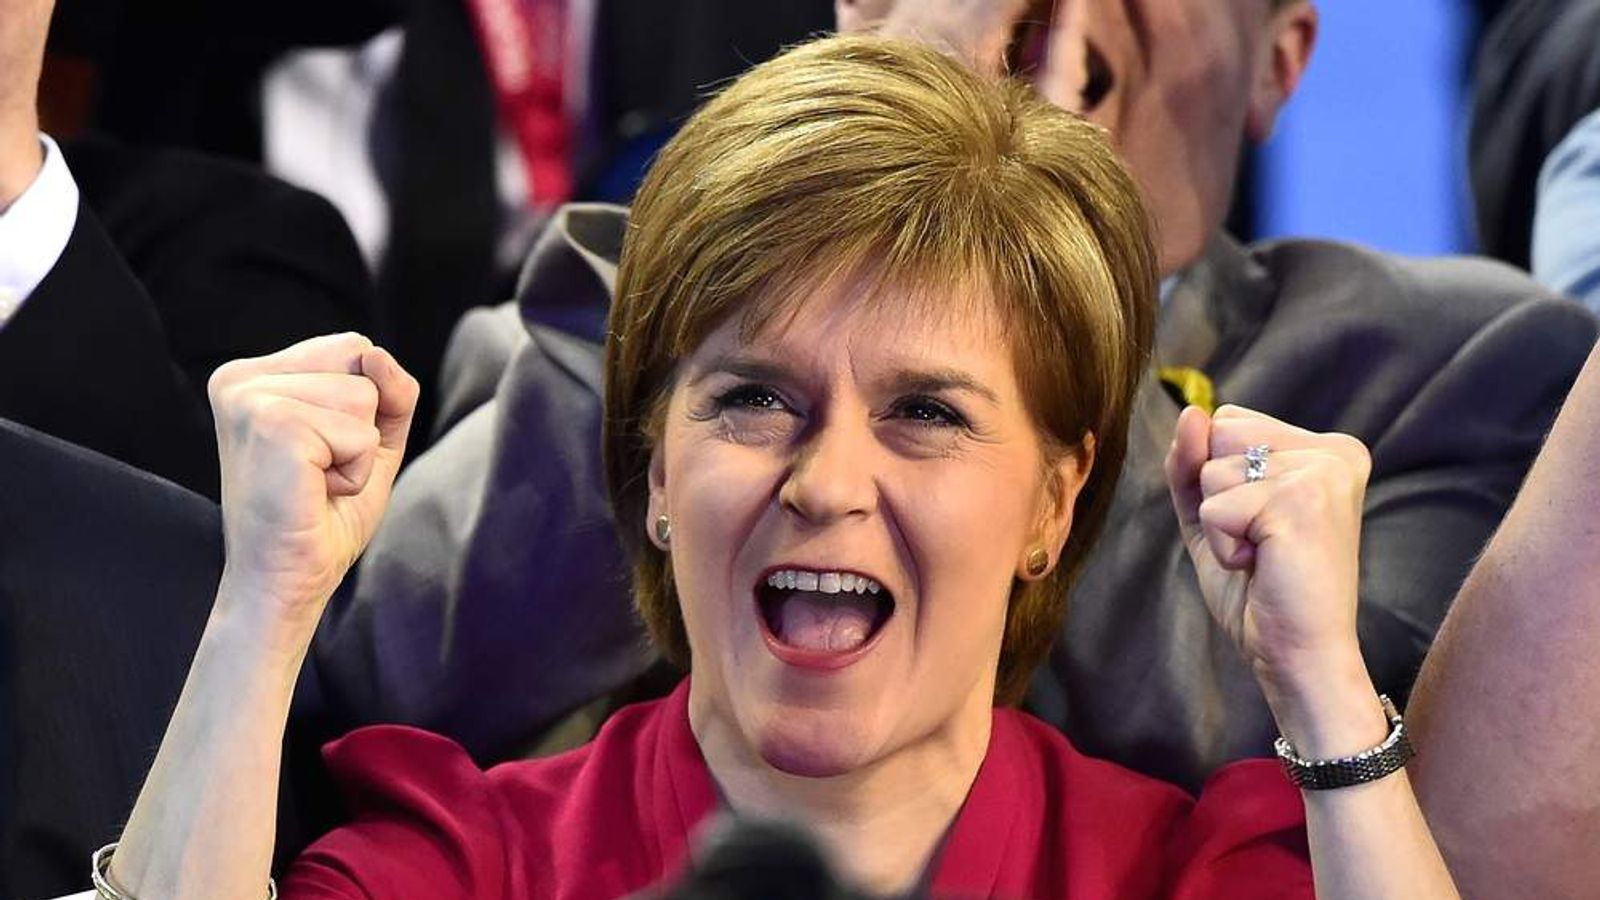 Nicola Sturgeon Attends The Glasgow Declaration To Hear The Results Of Seven Wards